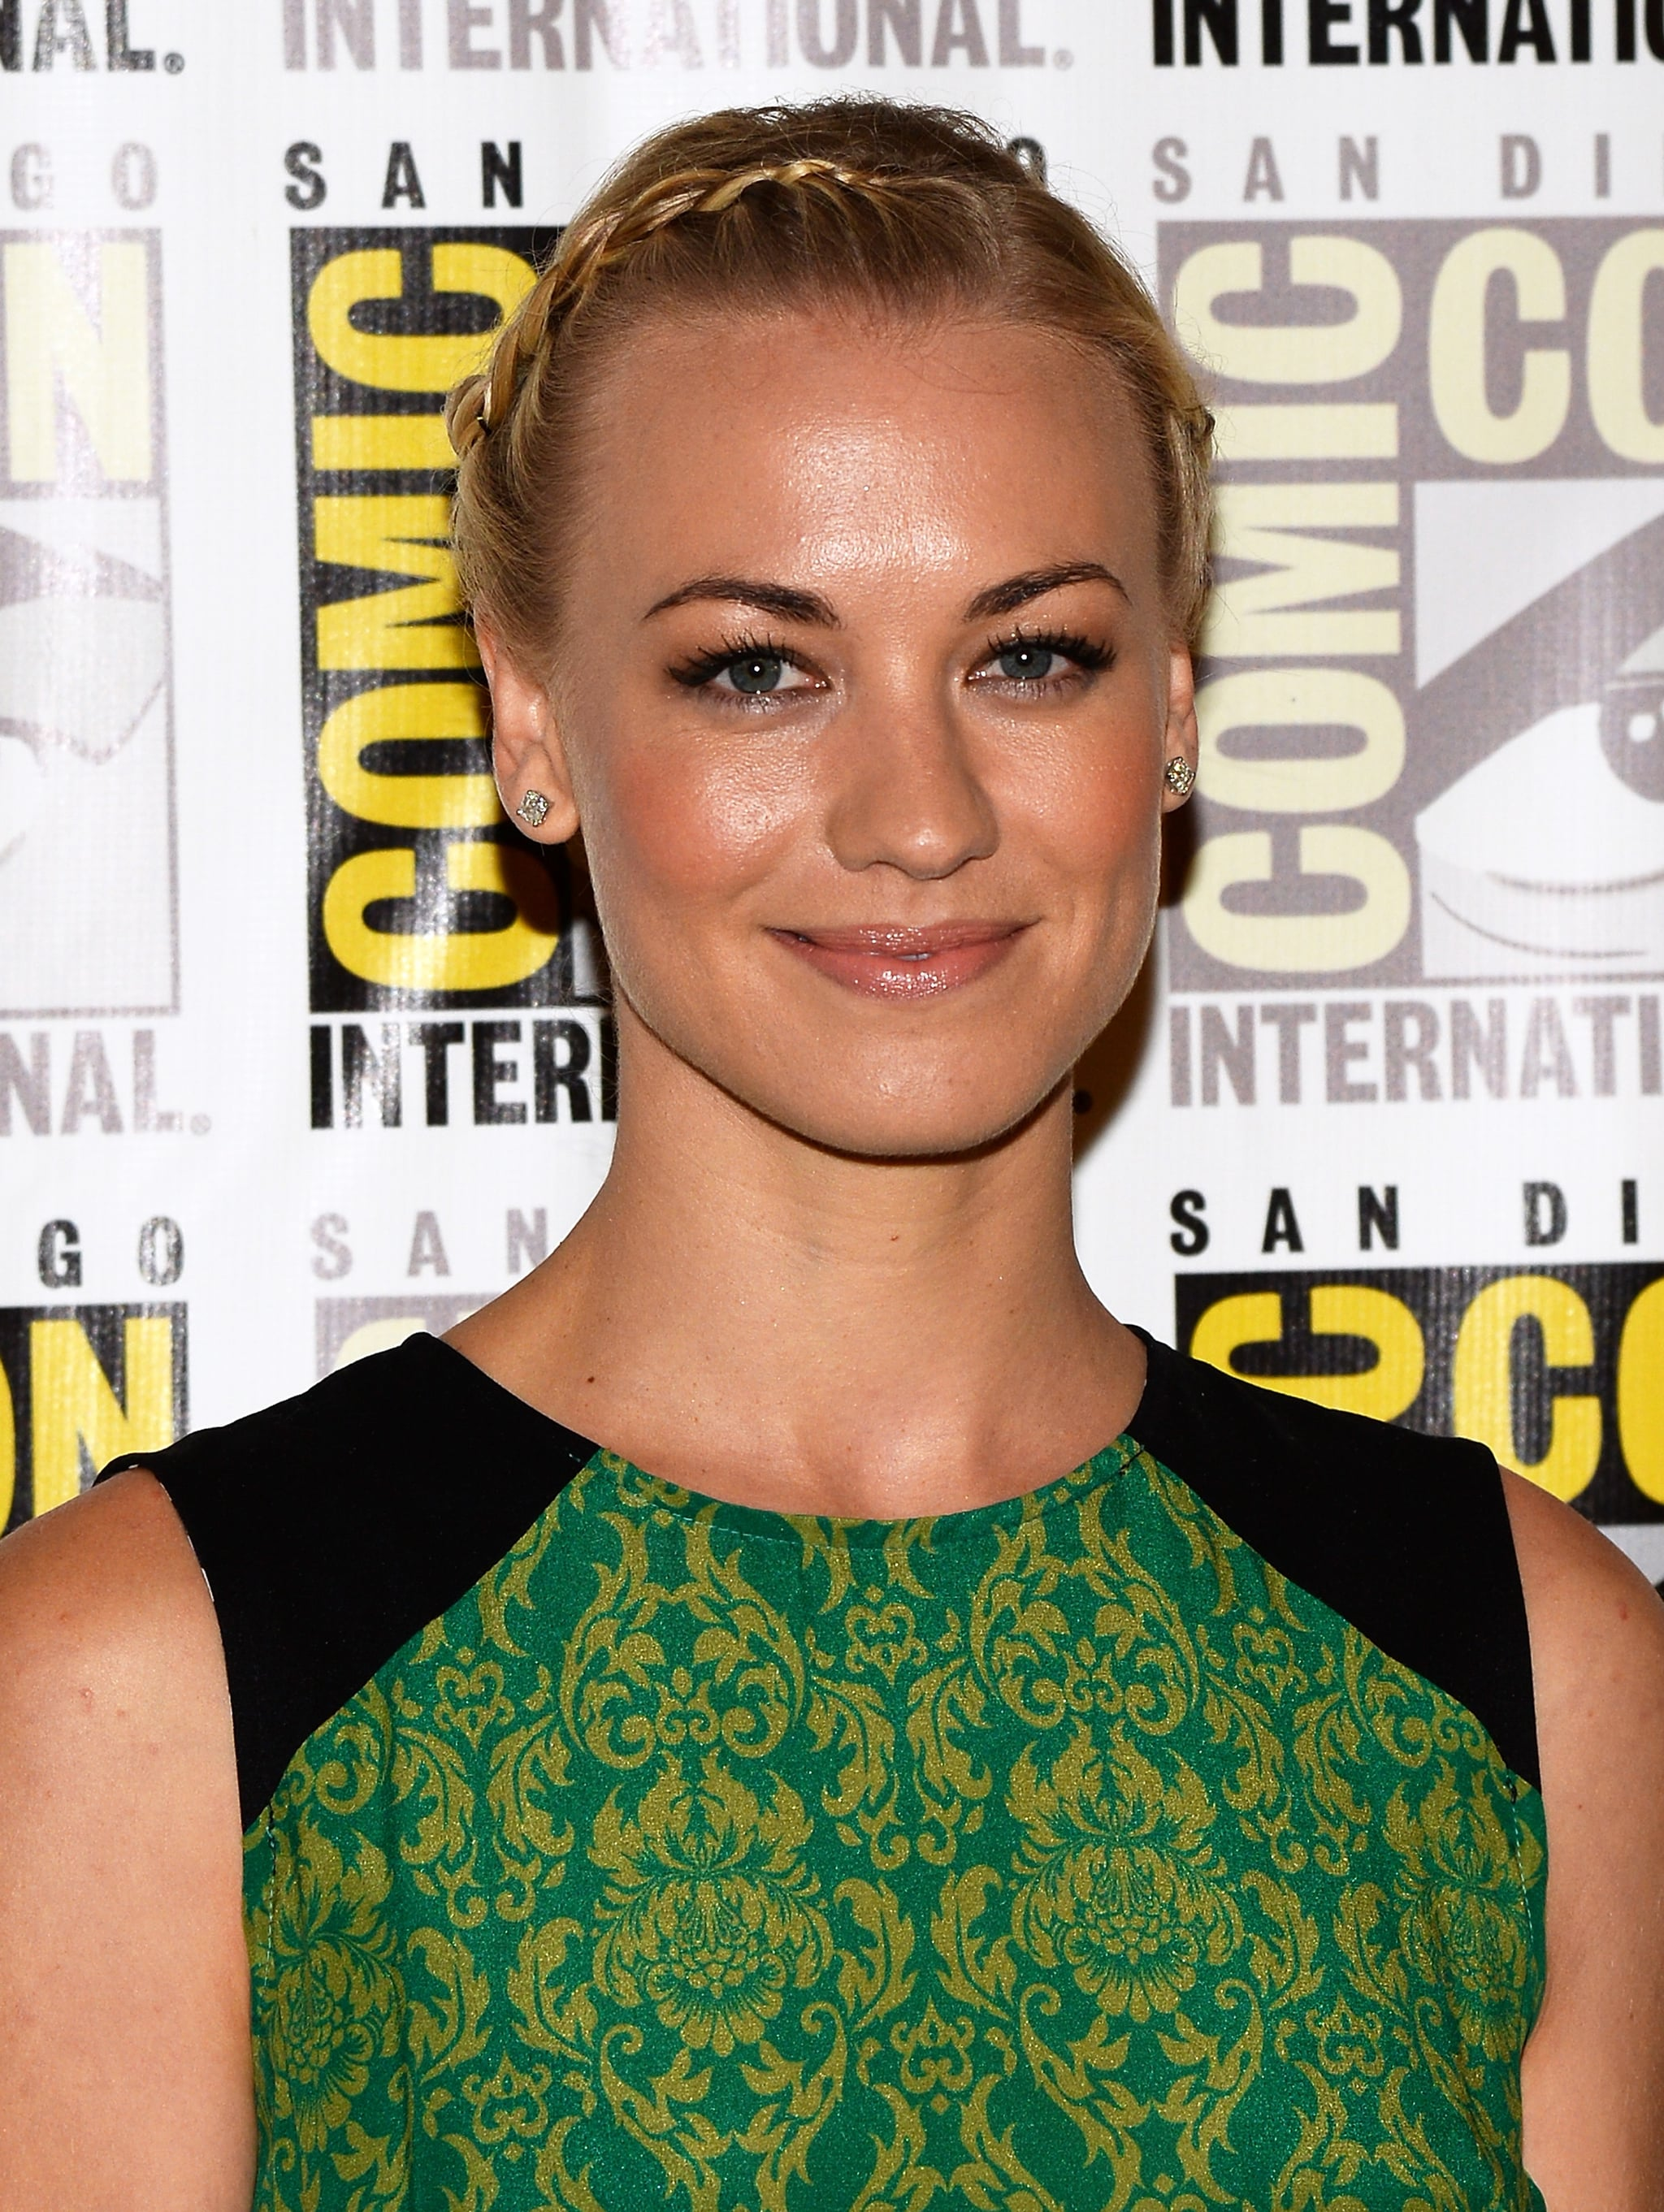 Yvonne Strahovski opted for a cool hairstyle on the press line for I, Frankenstein.